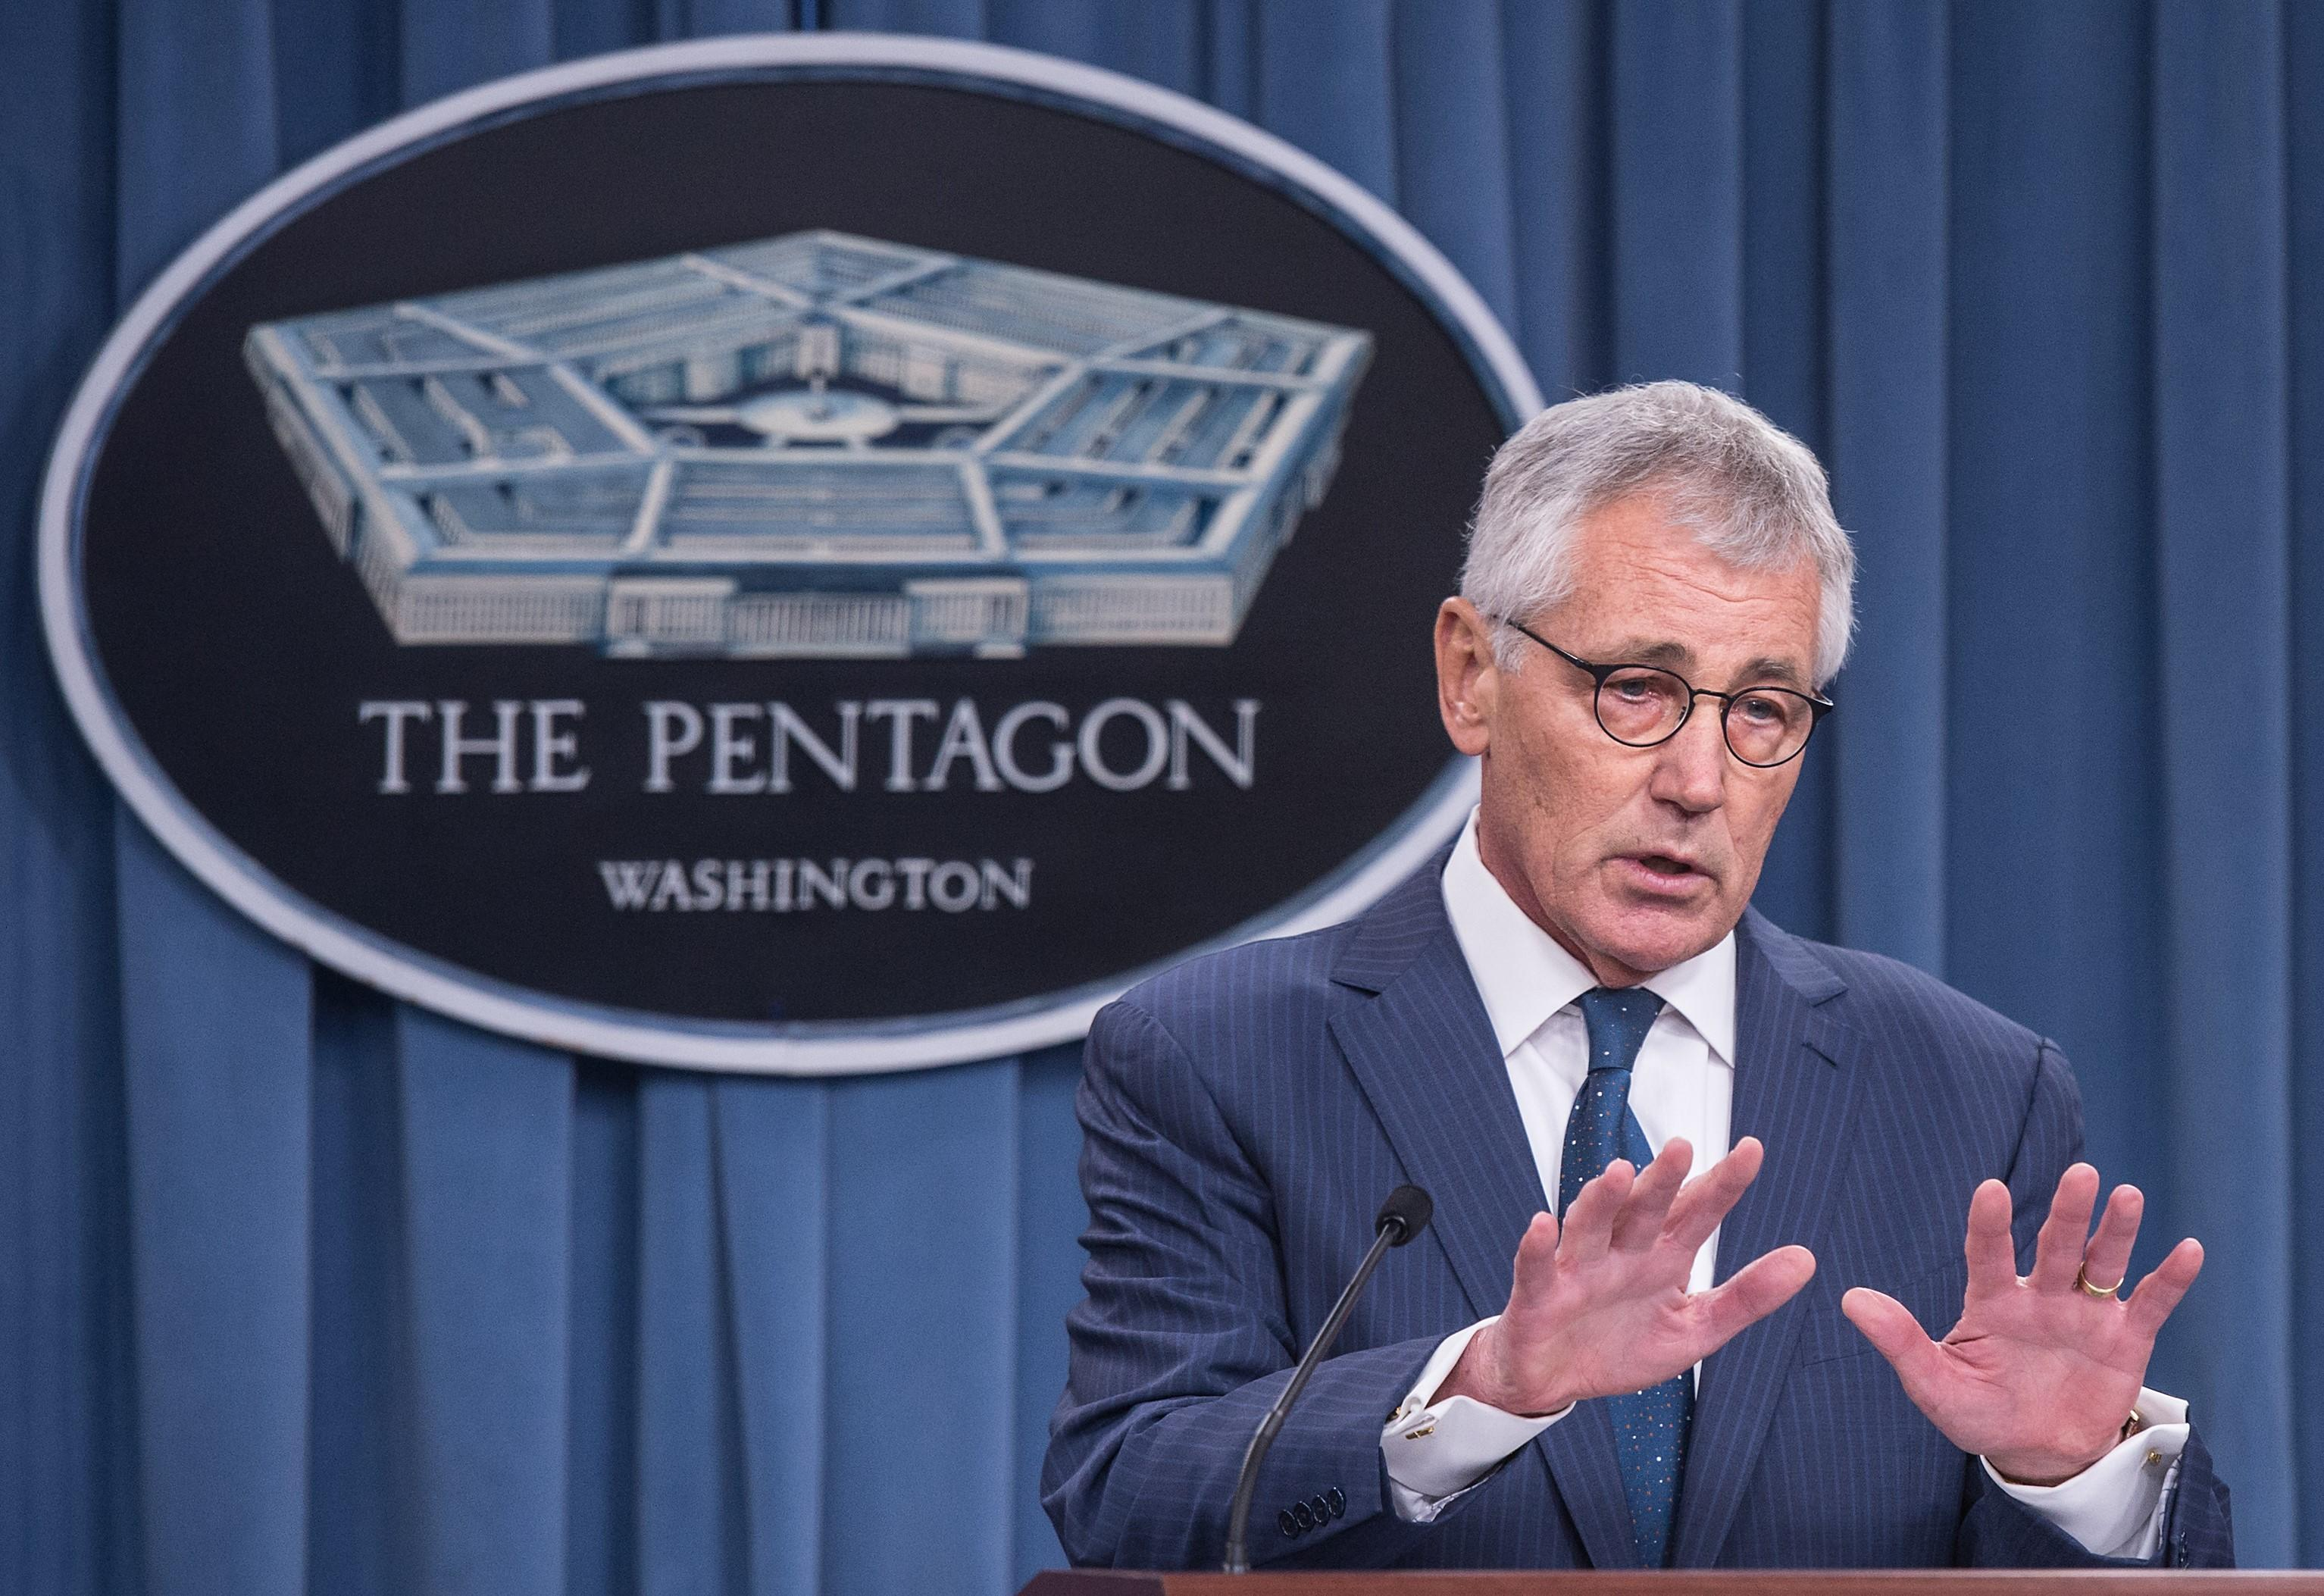 Closing Guantanamo prison 'very difficult': Hagel